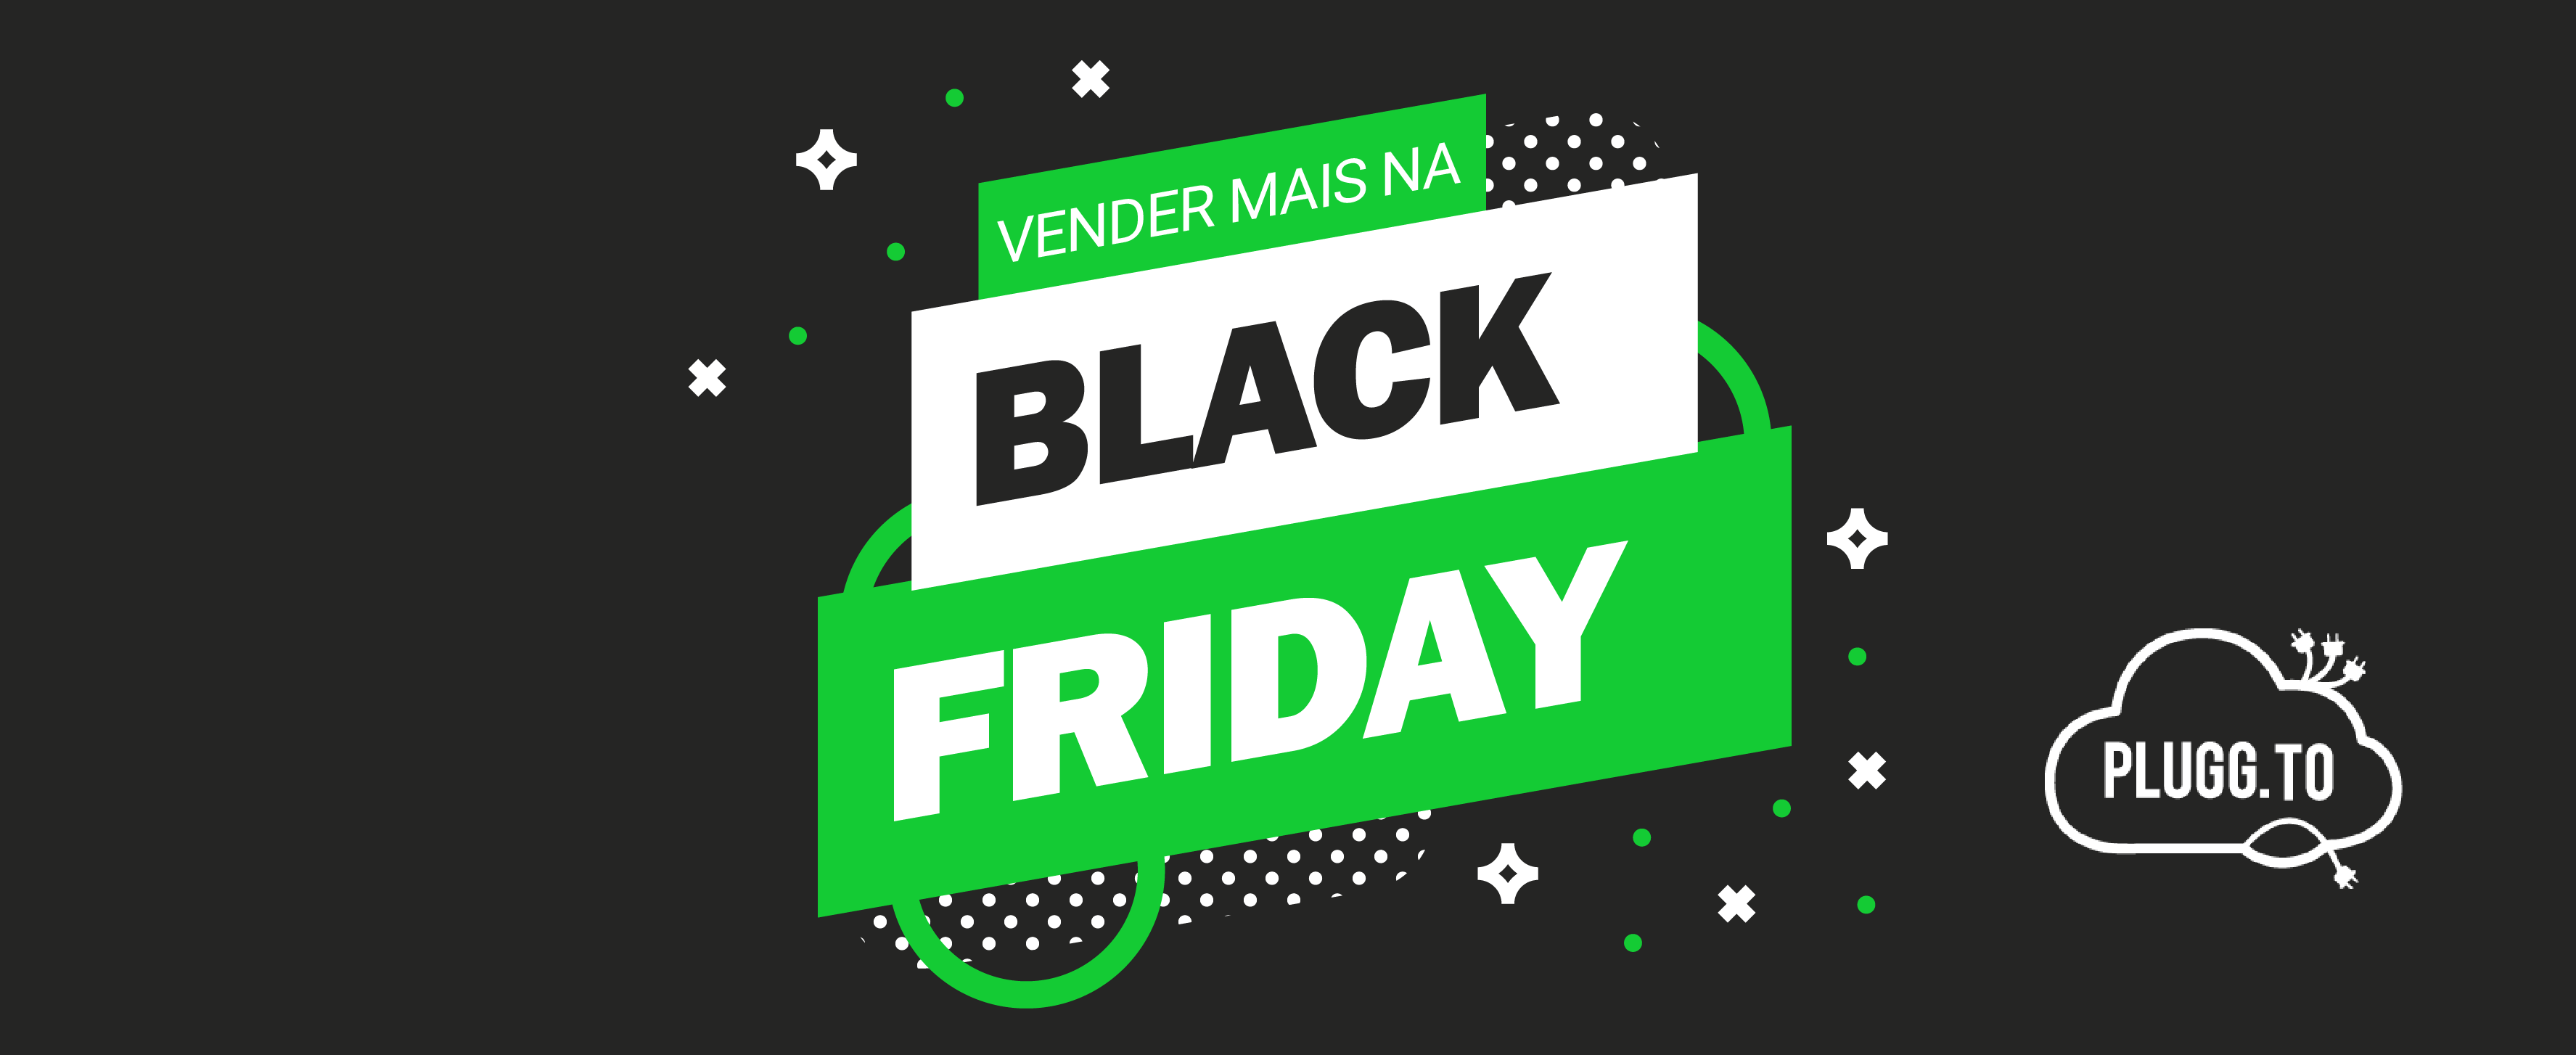 Planejamento para Vender Mais na Black Friday